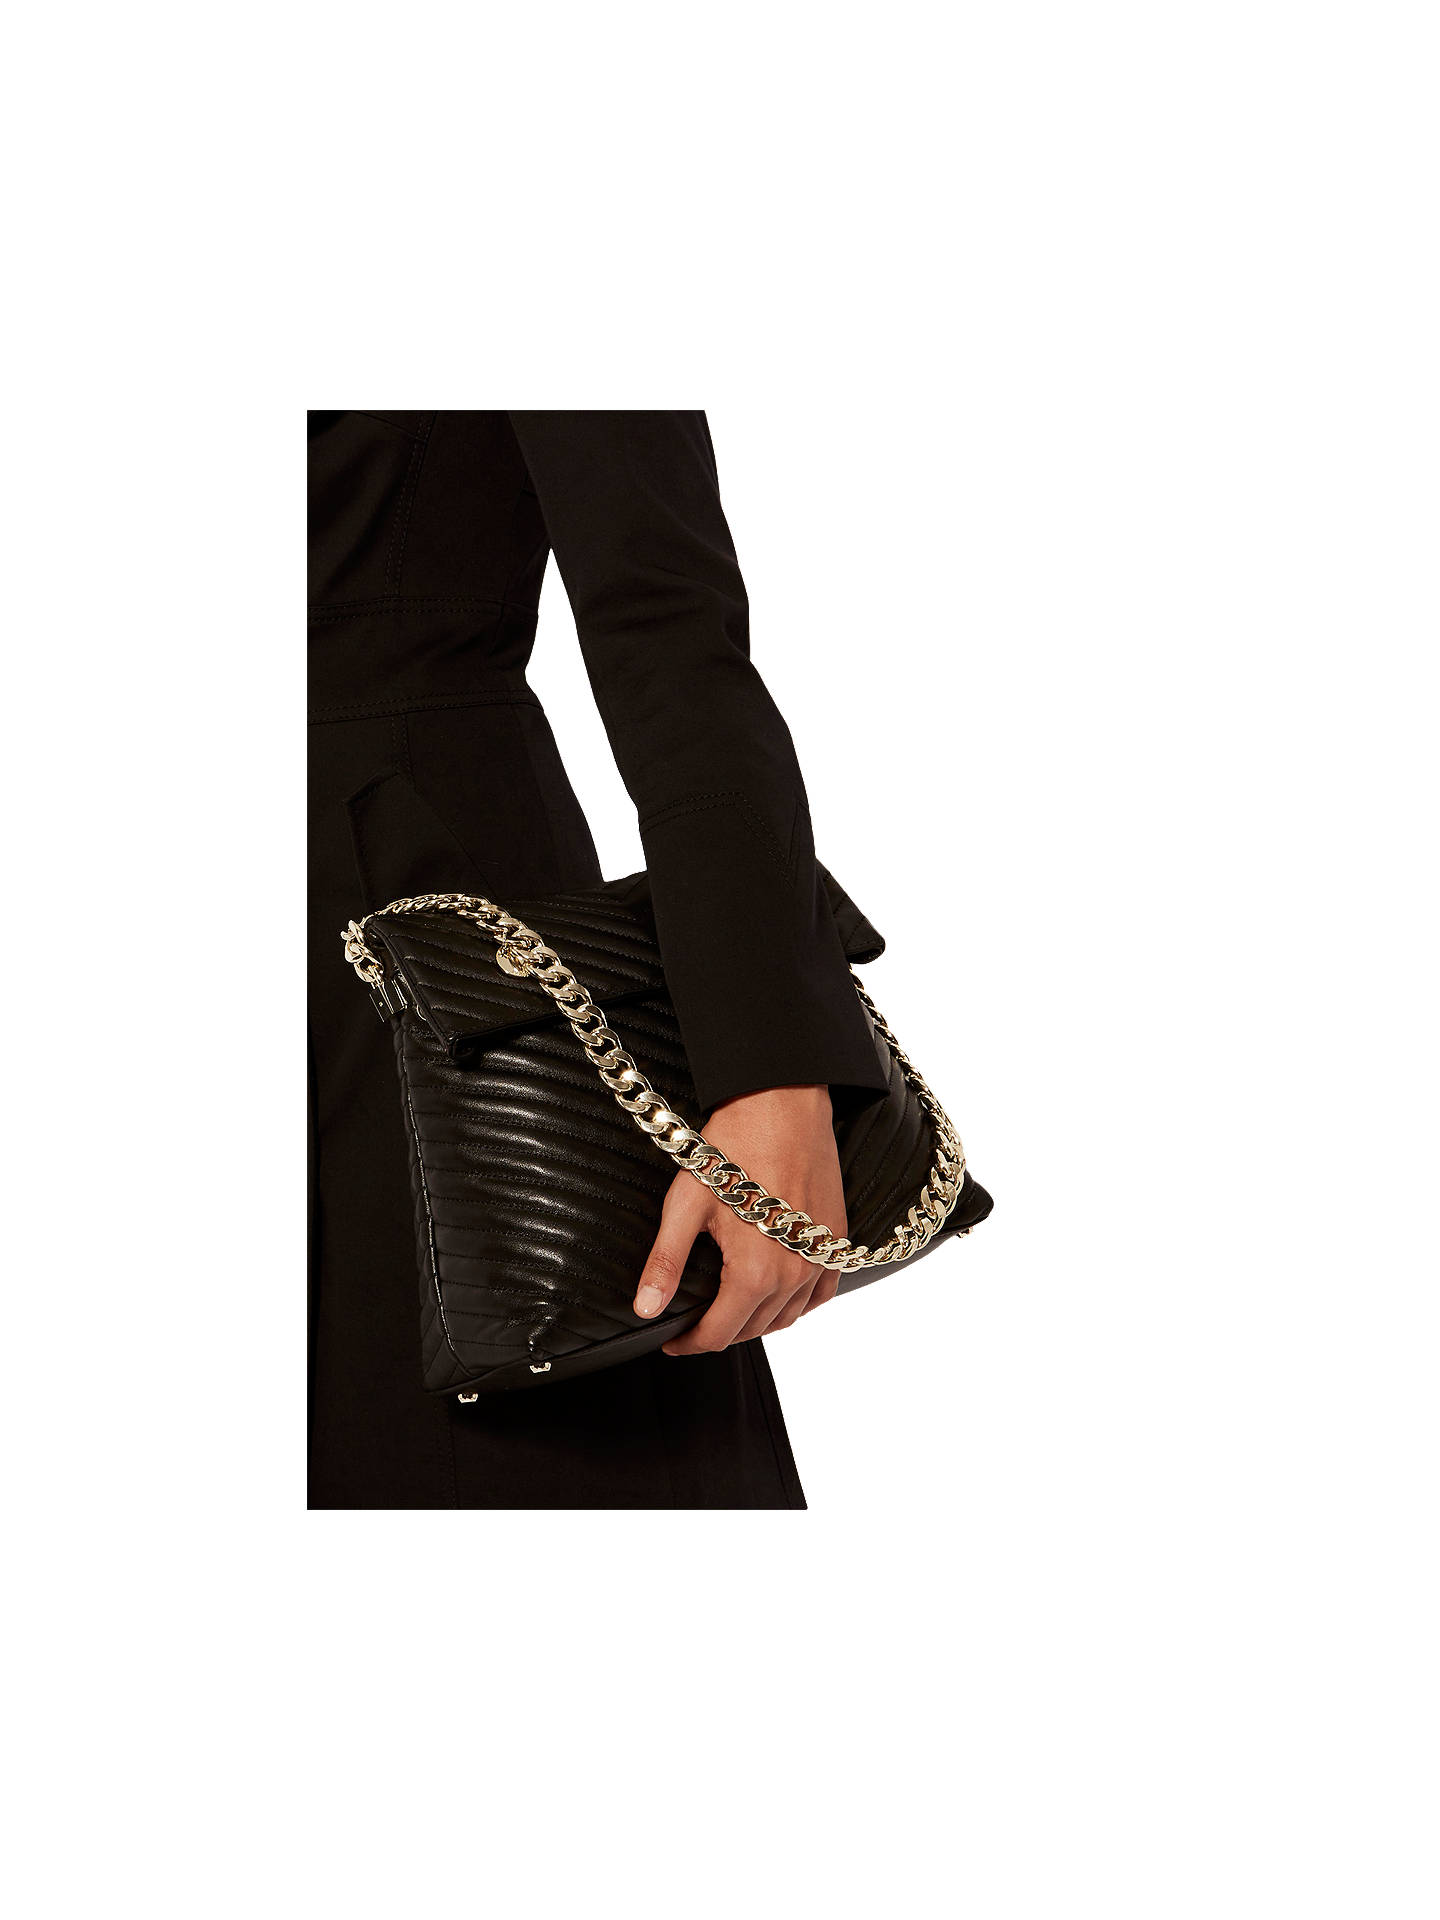 a5f1ae43399 ... Buy Karen Millen Leather Regent Chain Bag, Black Online at  johnlewis.com ...